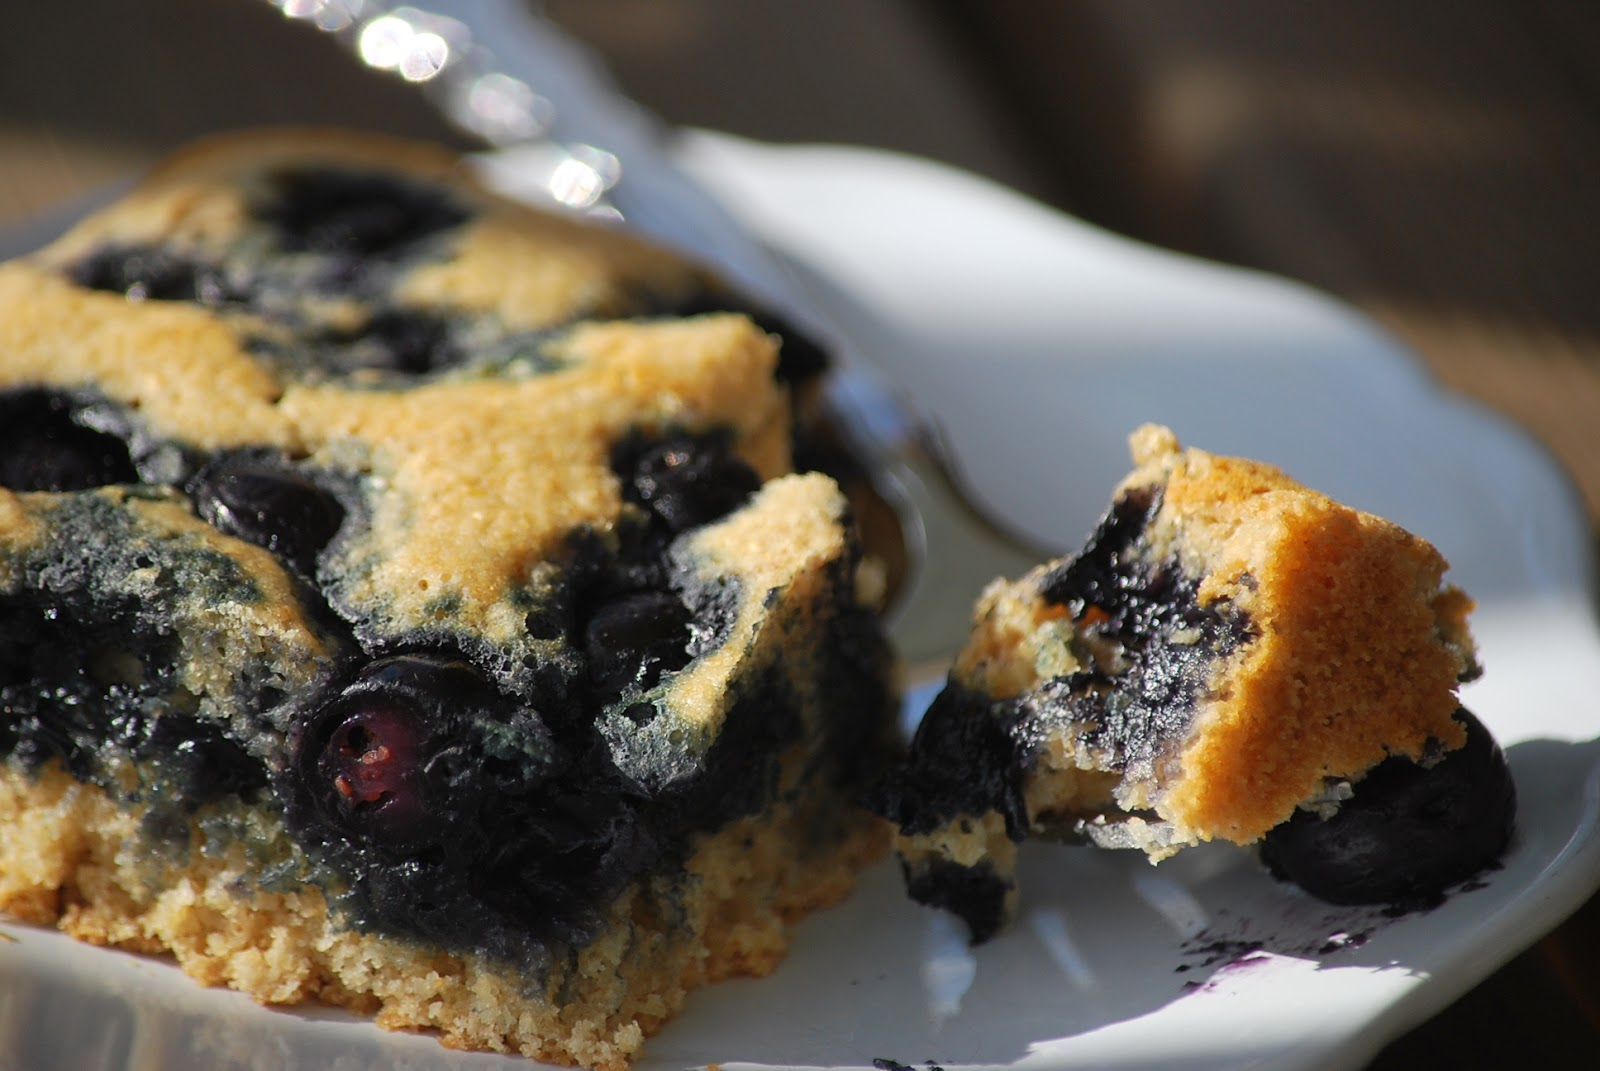 My story in recipes: Blueberry Dumpster Cobbler